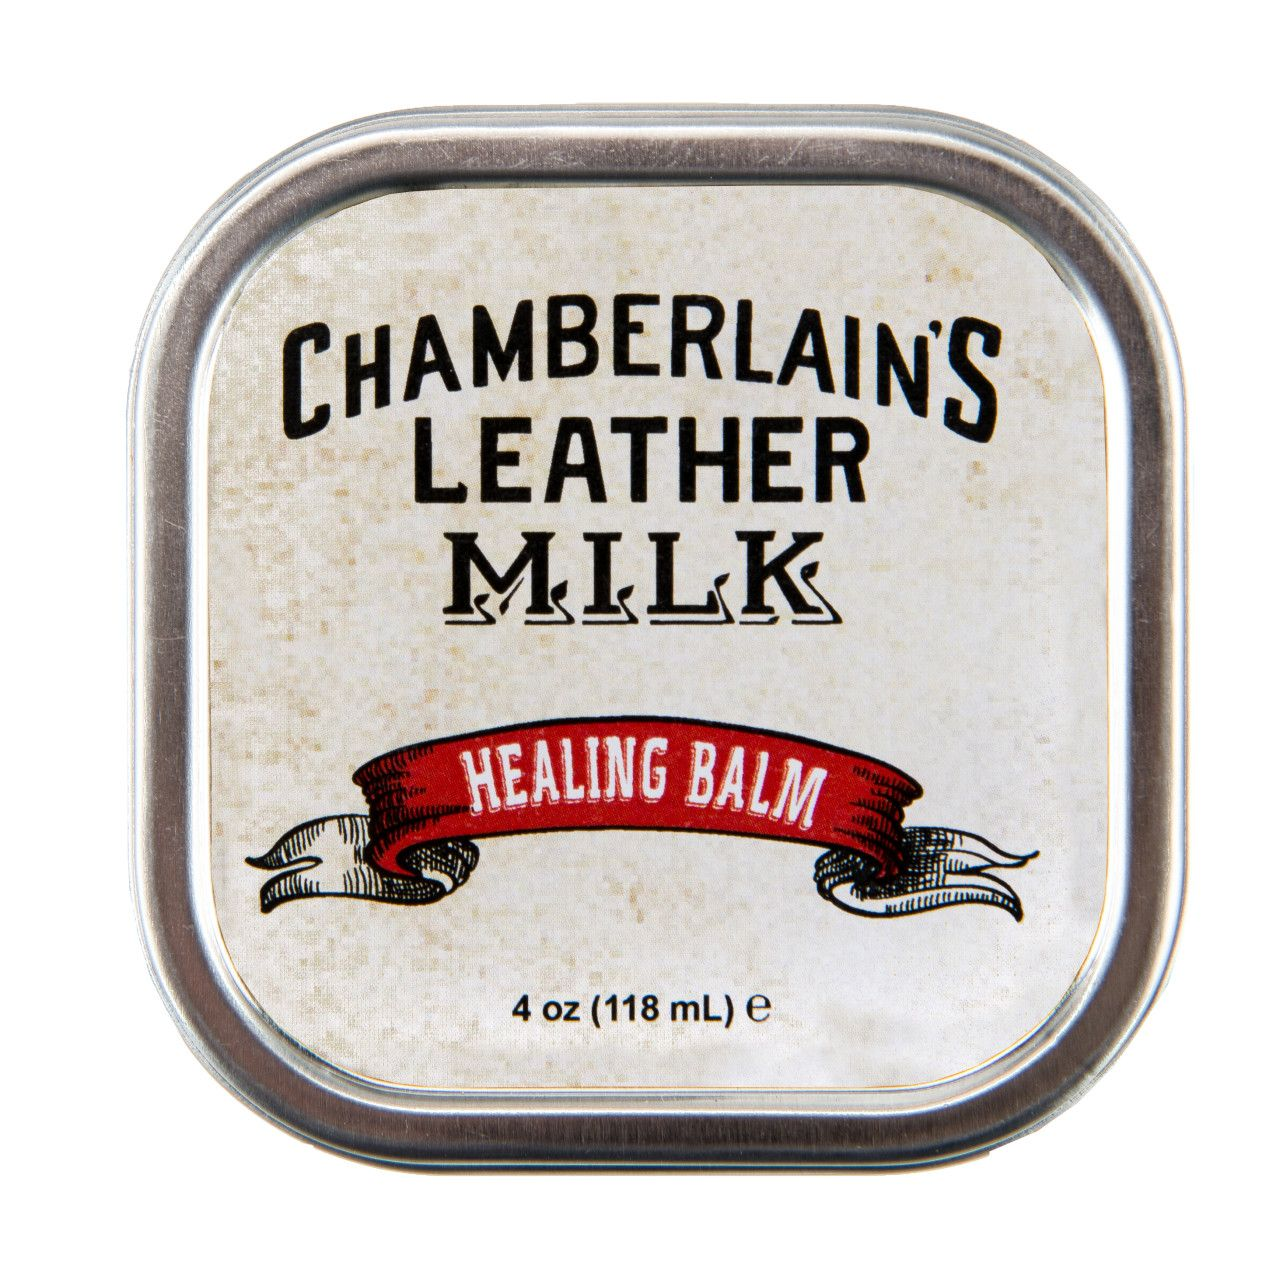 chamberlain leather milk healing balm